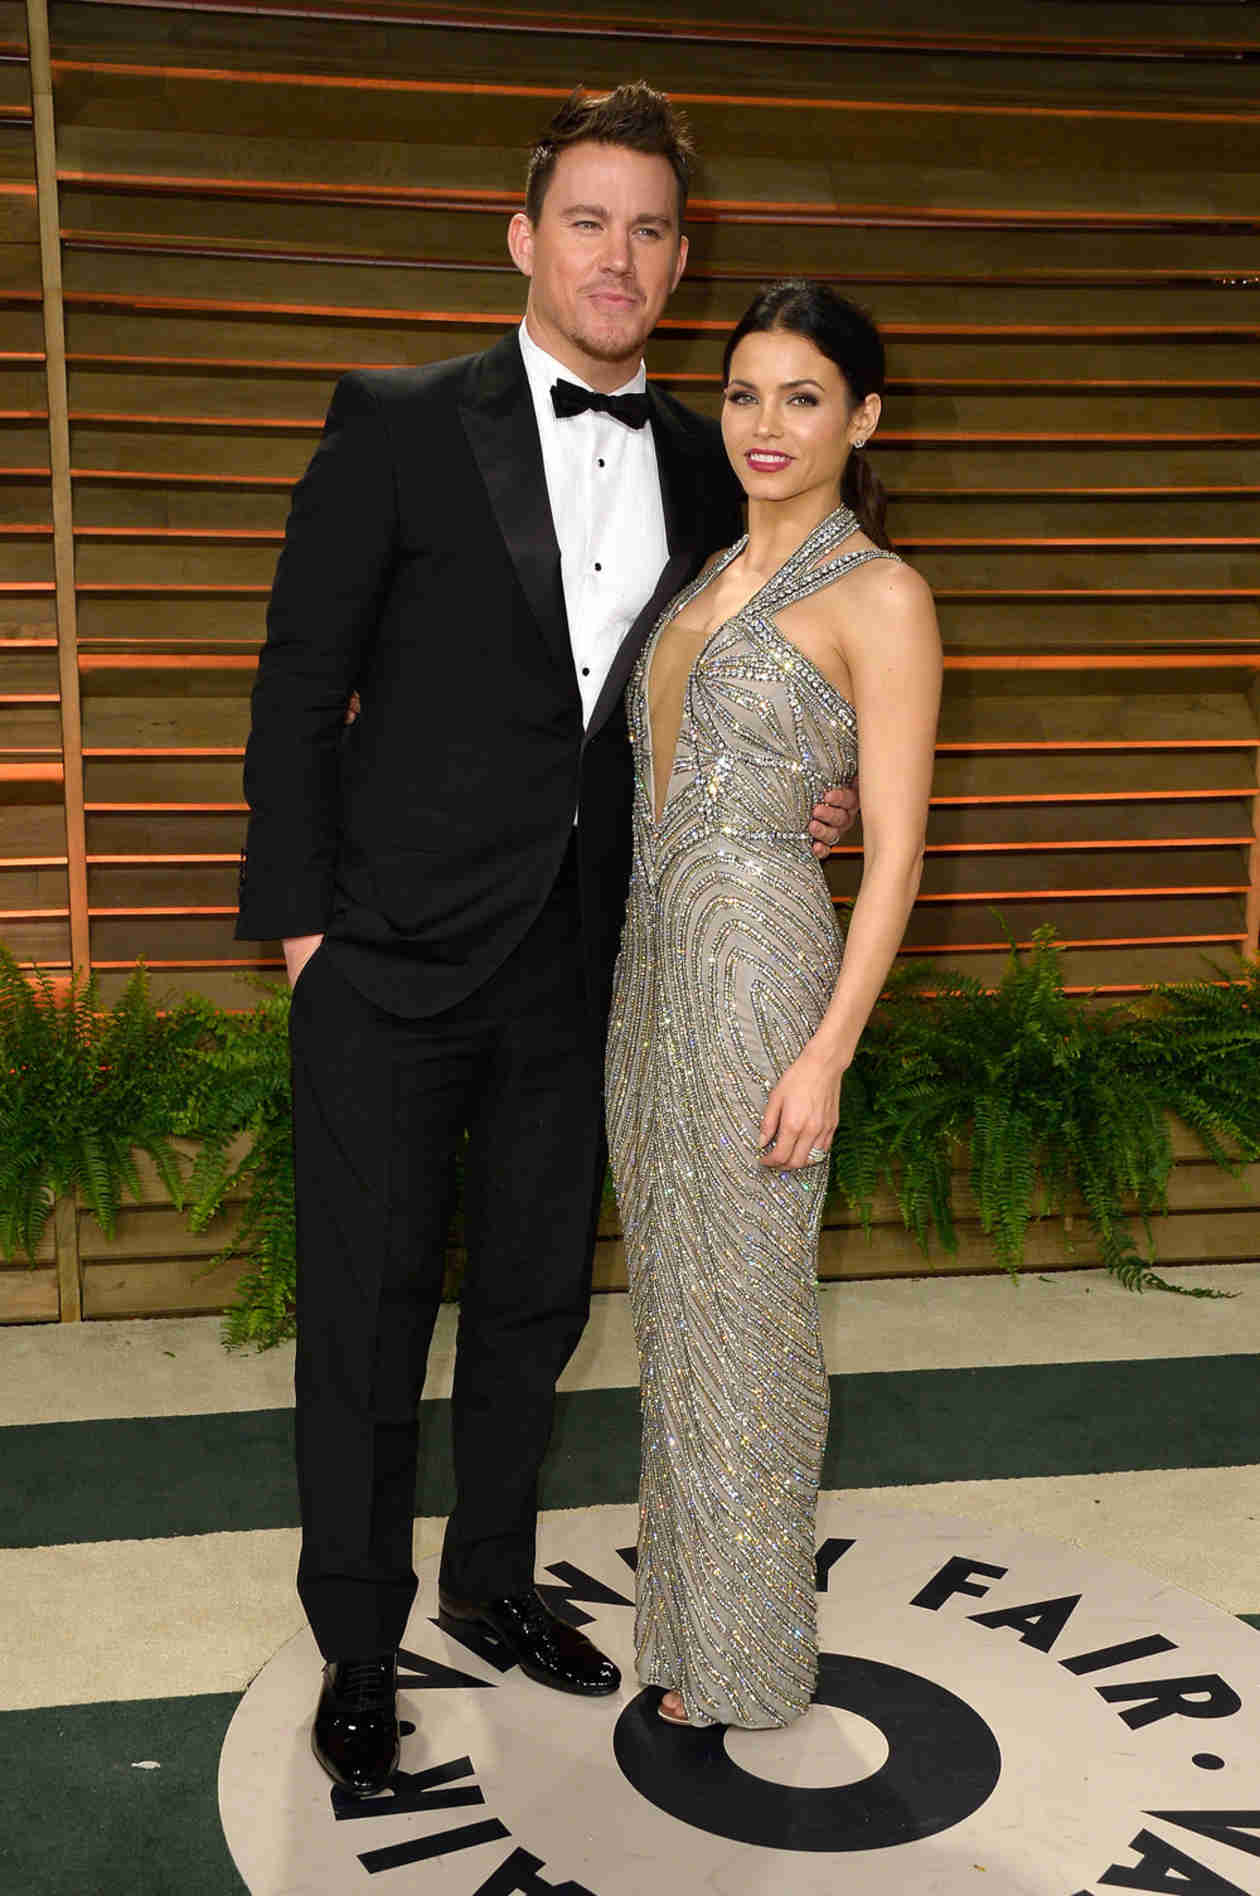 Does Channing Tatum and Jenna Dewan's Daughter Have Her Own Trailer?